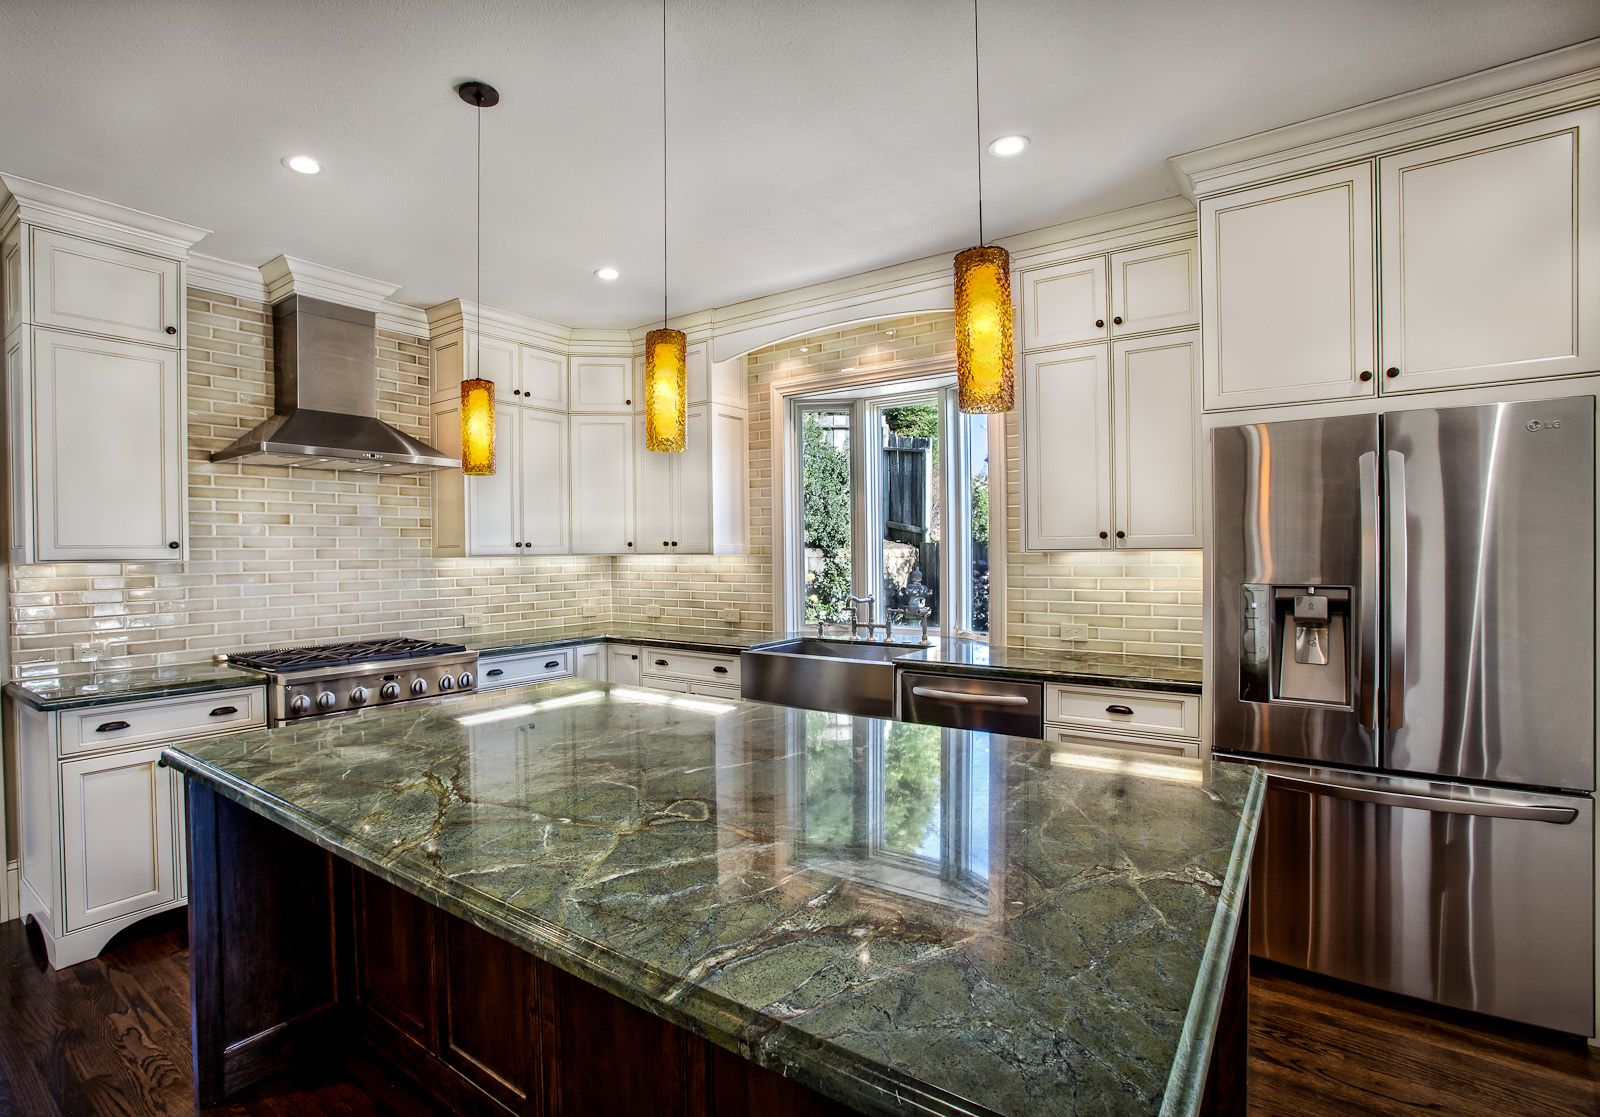 Joe Ercoli Sf Bay Area Commercial Photography Custom Cabinets Beautiful Kitchens Kitchen Remodel